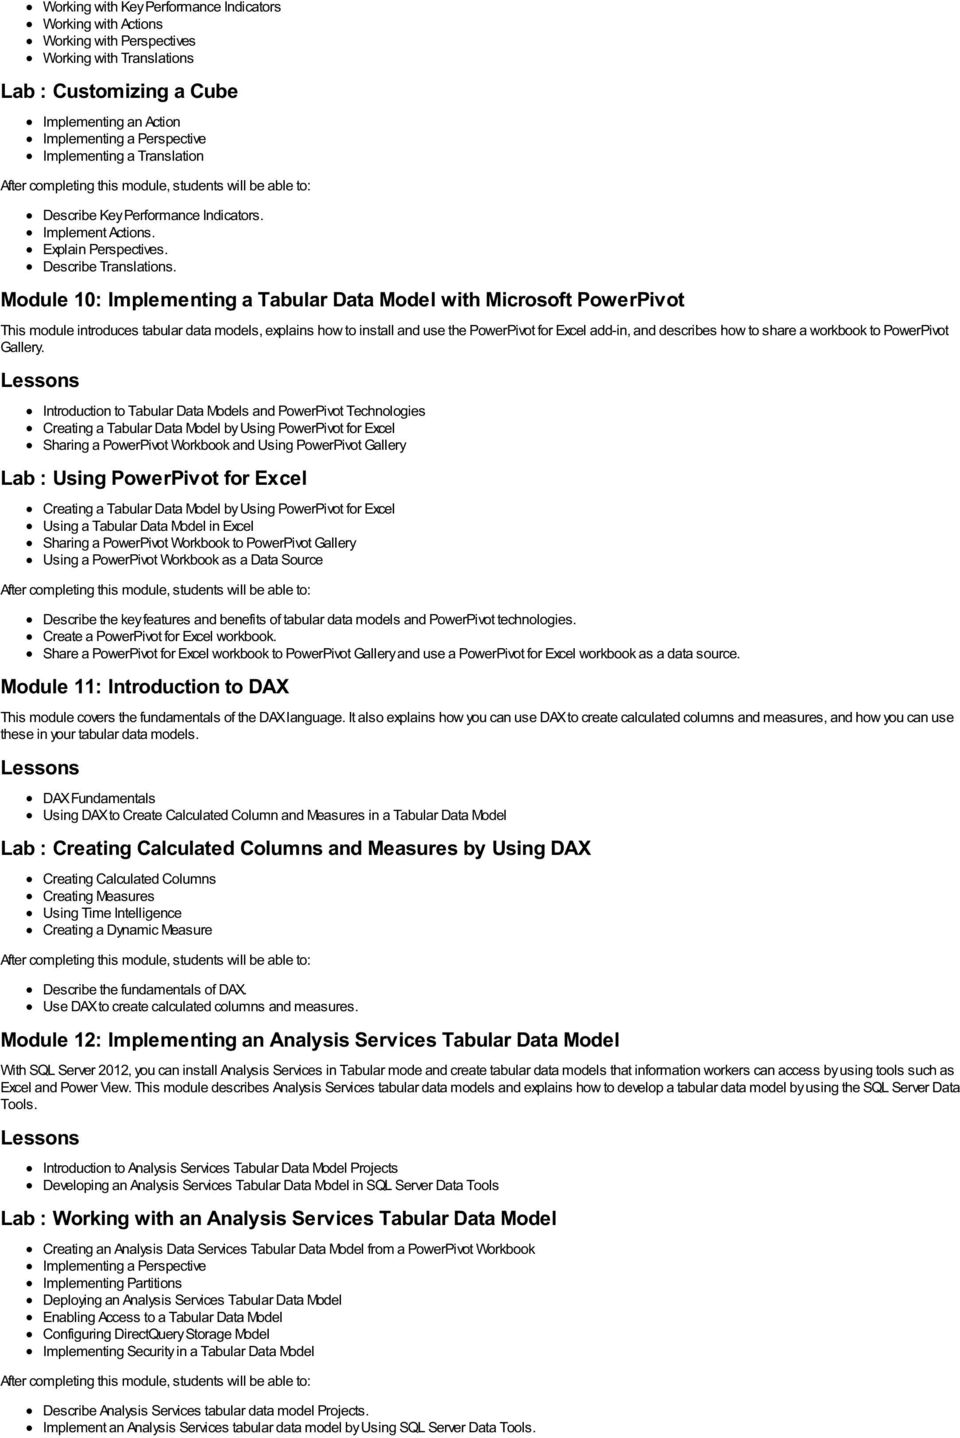 Module 10: Implementing a Tabular Data Model with Microsoft PowerPivot This module introduces tabular data models, explains how to install and use the PowerPivot for Excel add-in, and describes how